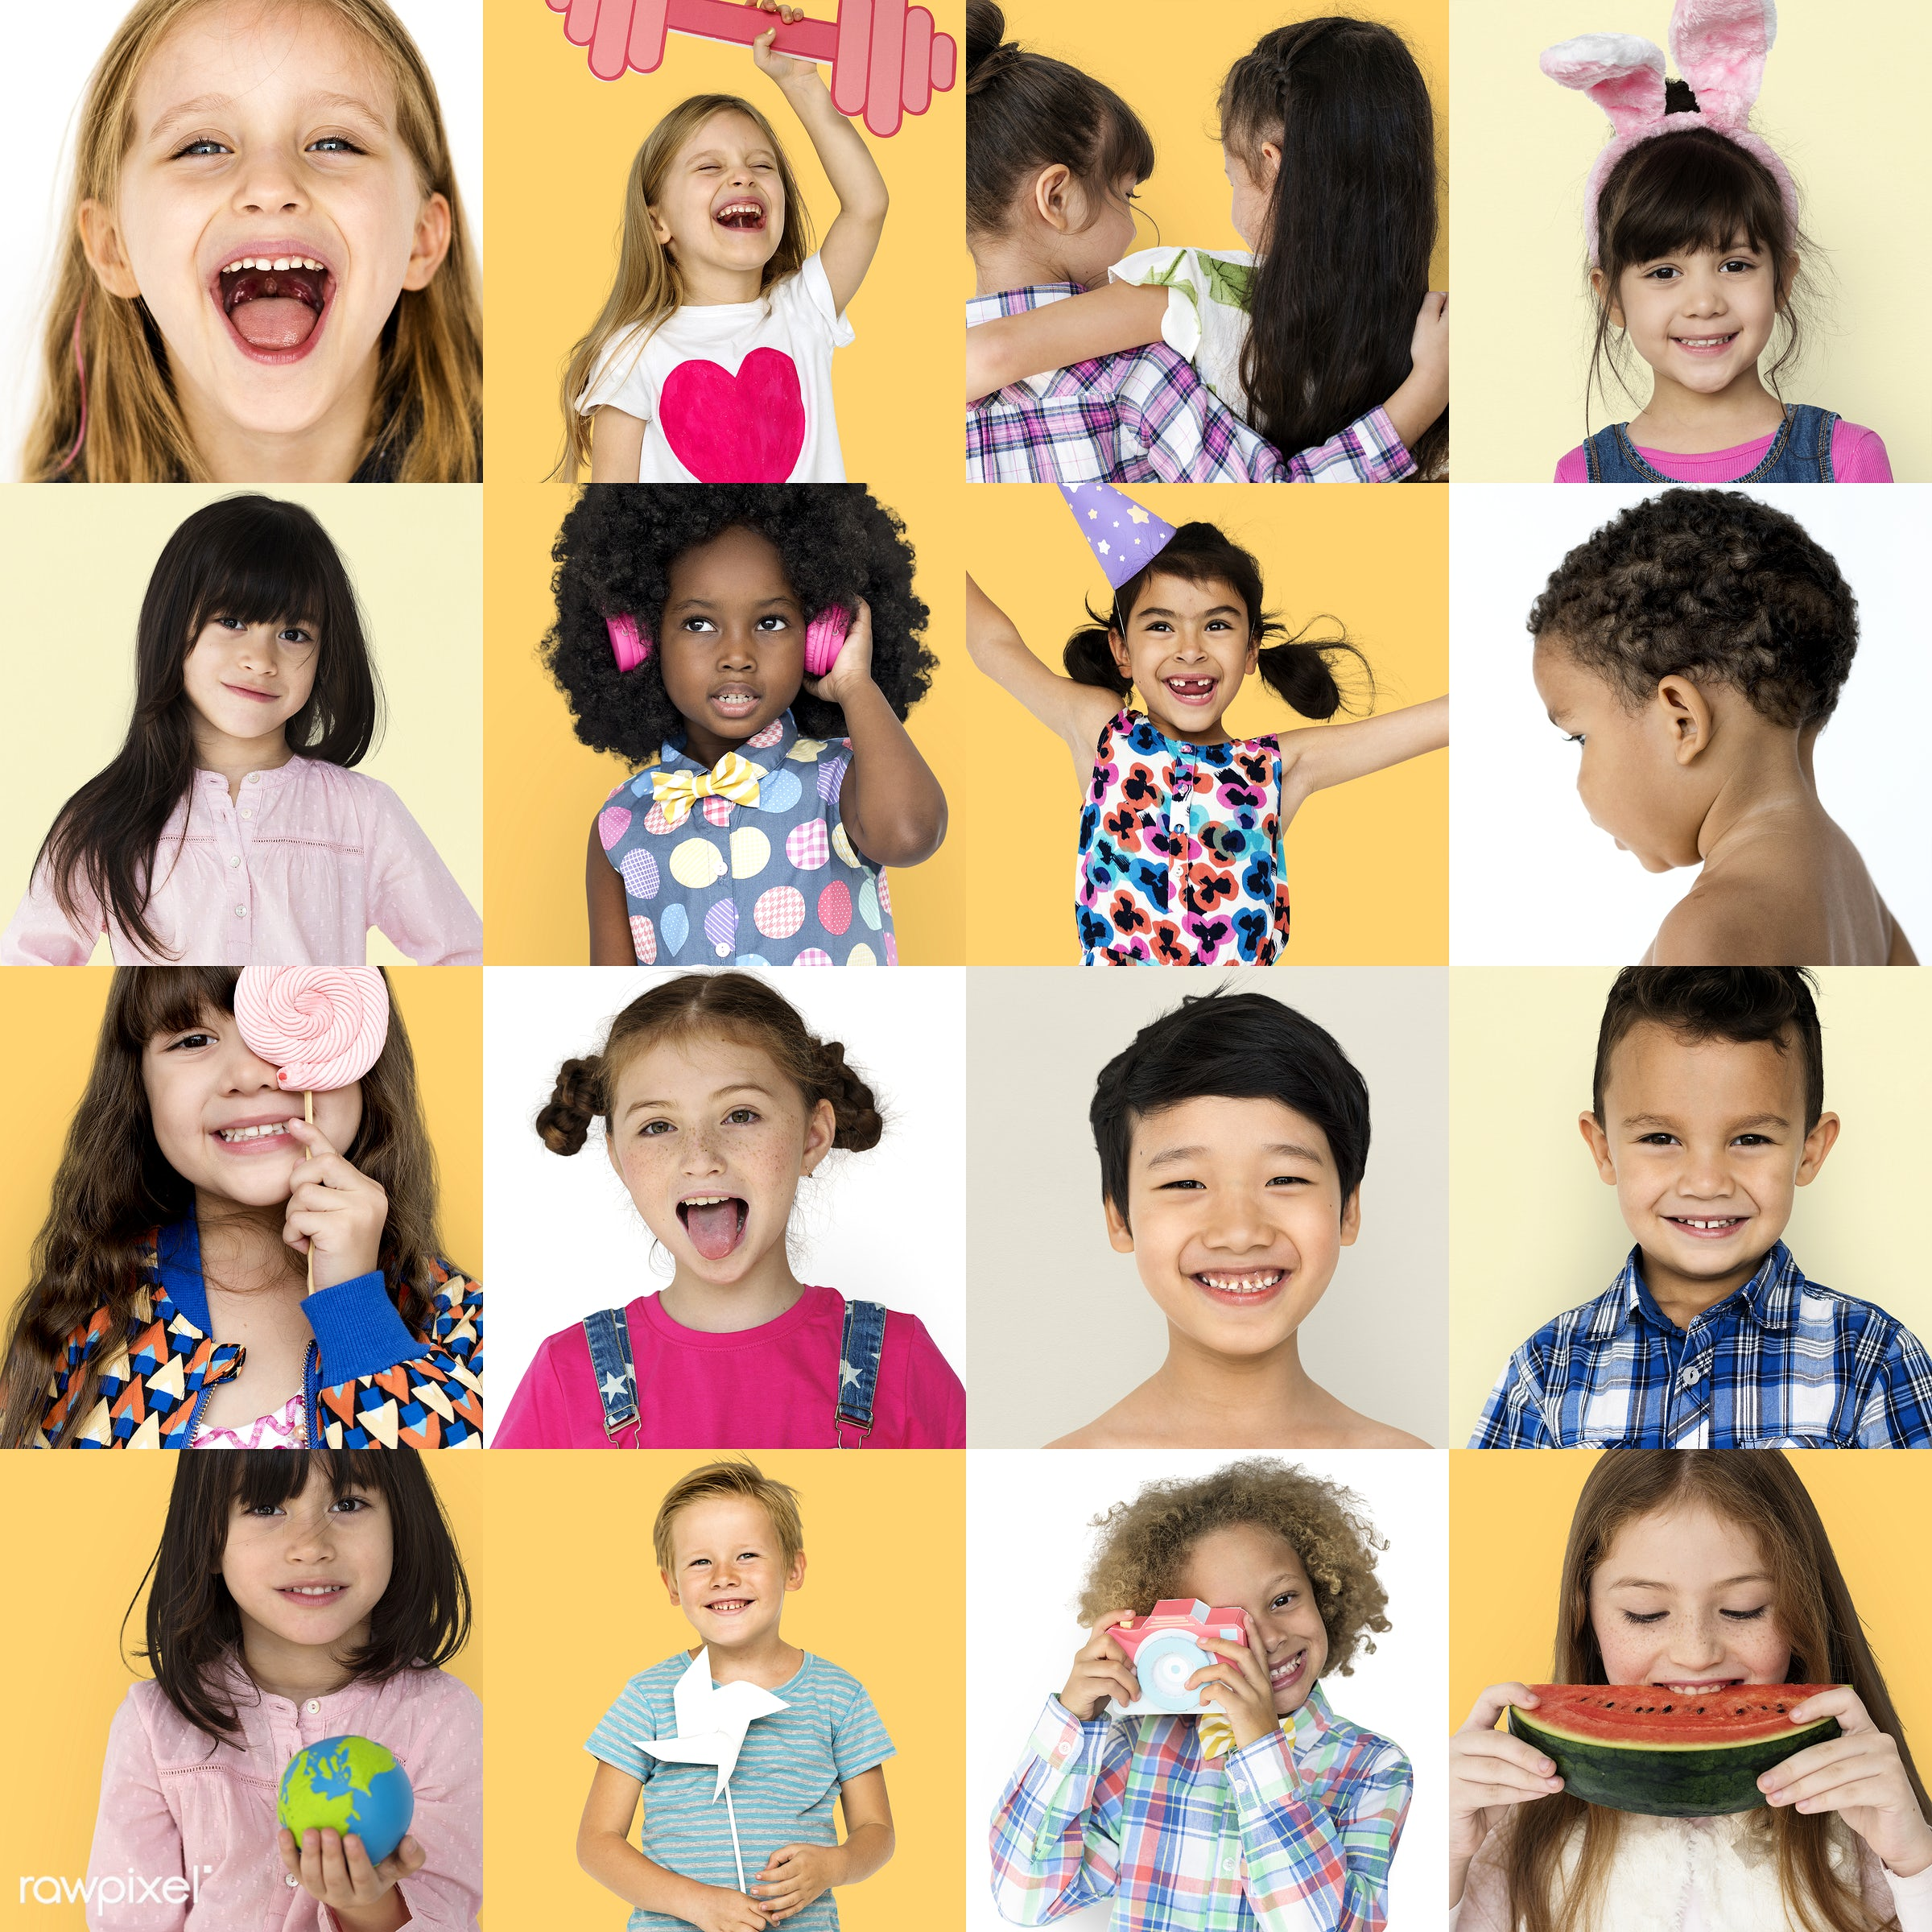 diverse, people, positivity, caucasian, asian, friends, woman, childhood, cheerful, smiling, schoolgirl, isolated, little...